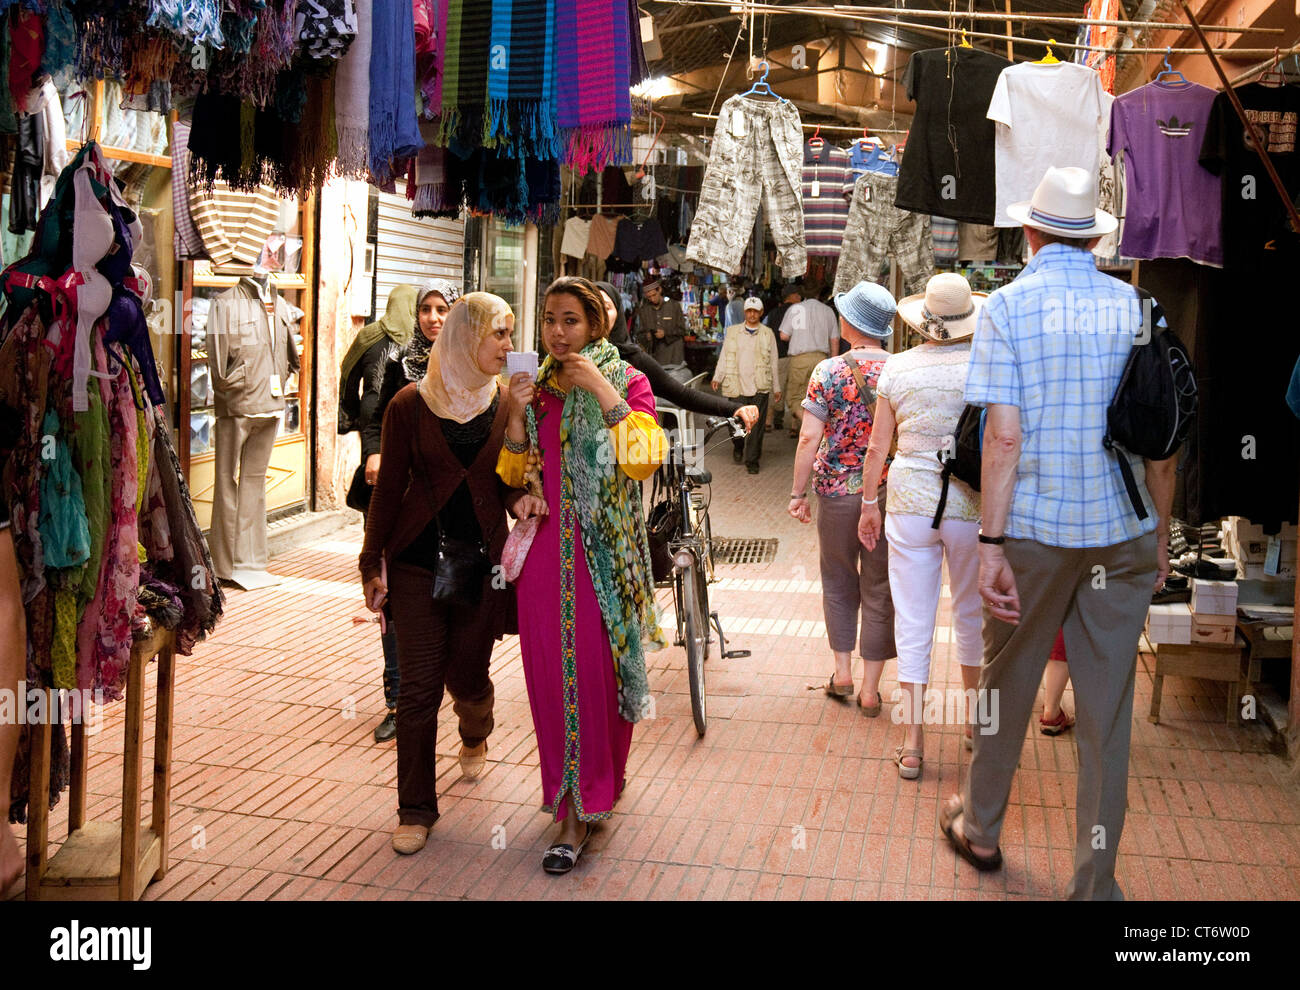 Tourists and local people shopping  in the souk, Taroudant, Morocco Africa - Stock Image